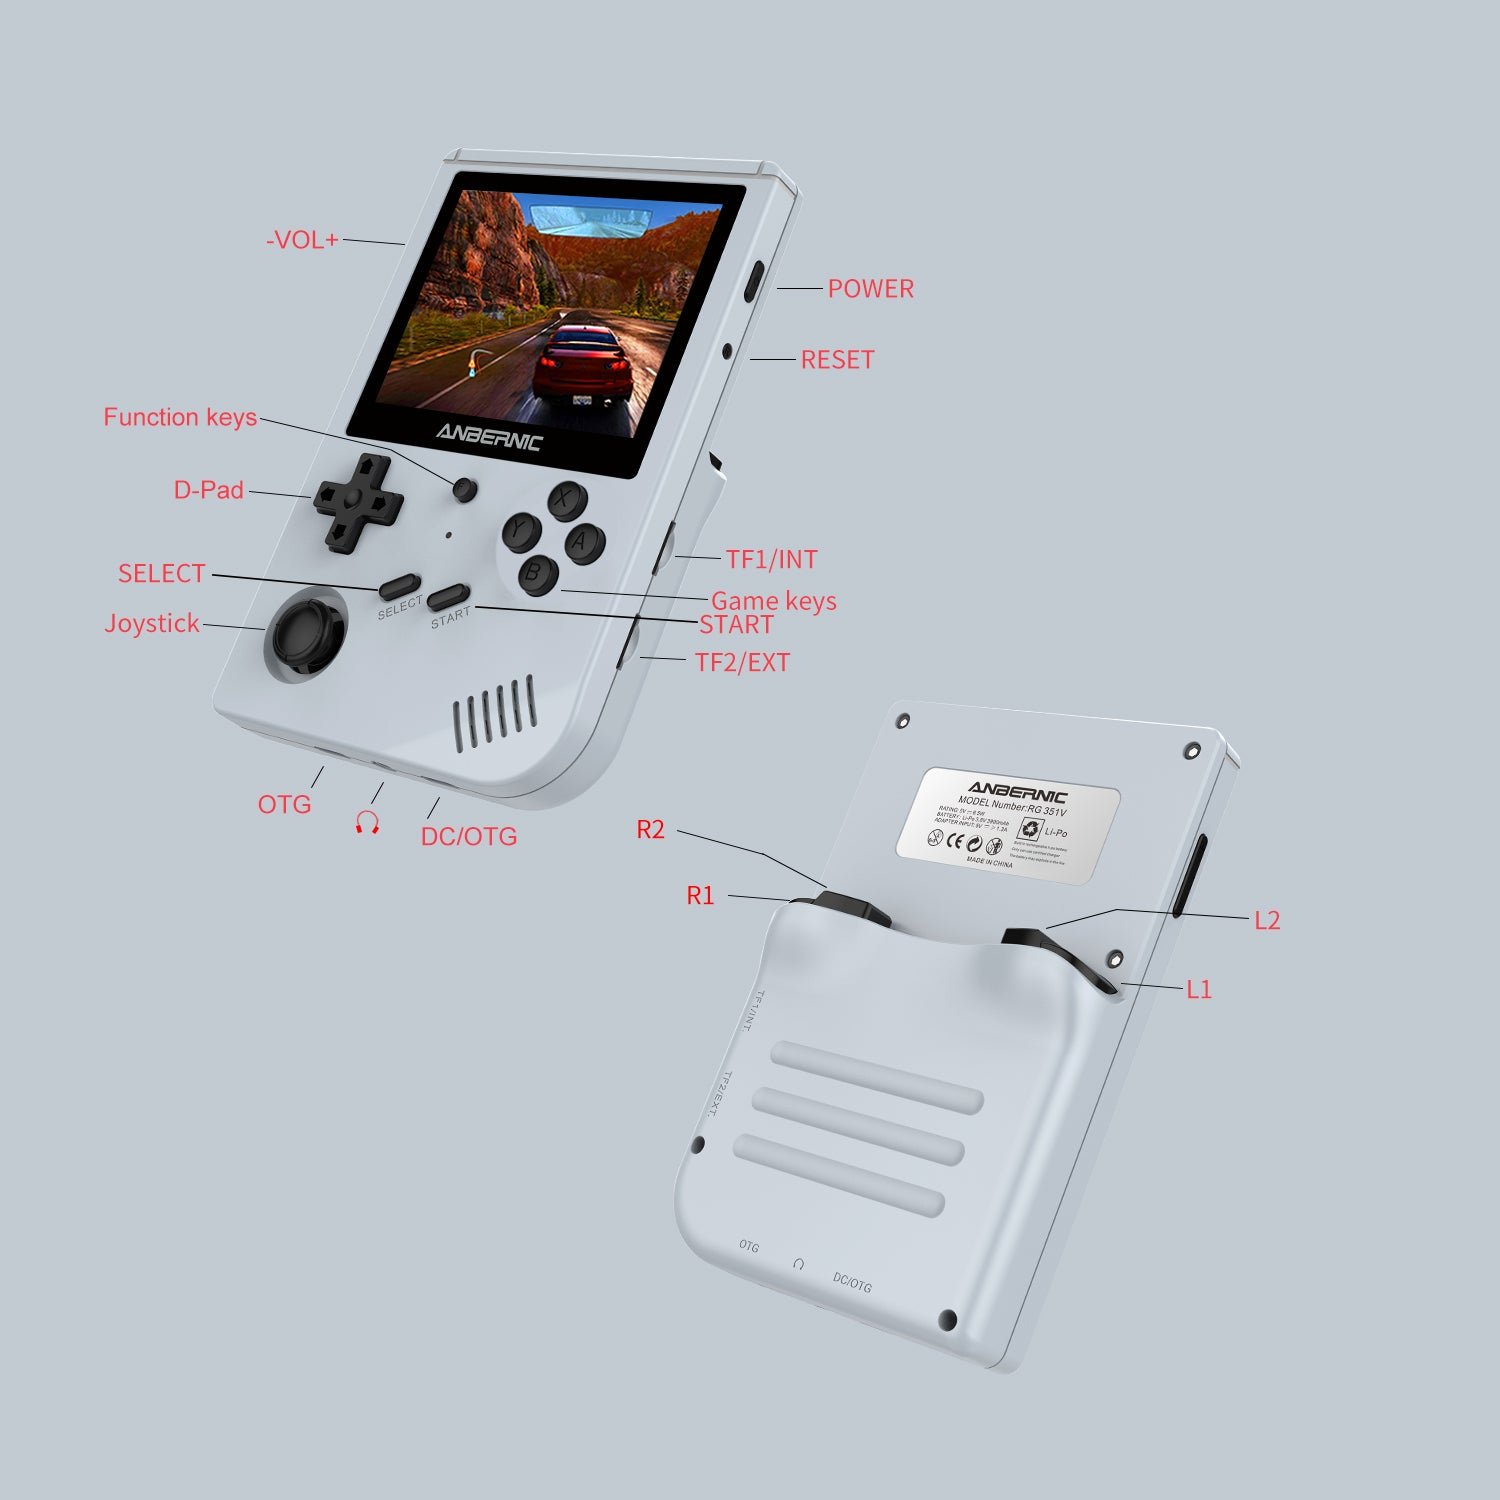 ANBERNIC RG351V Retro Gaming Handheld - Showing Button mapping